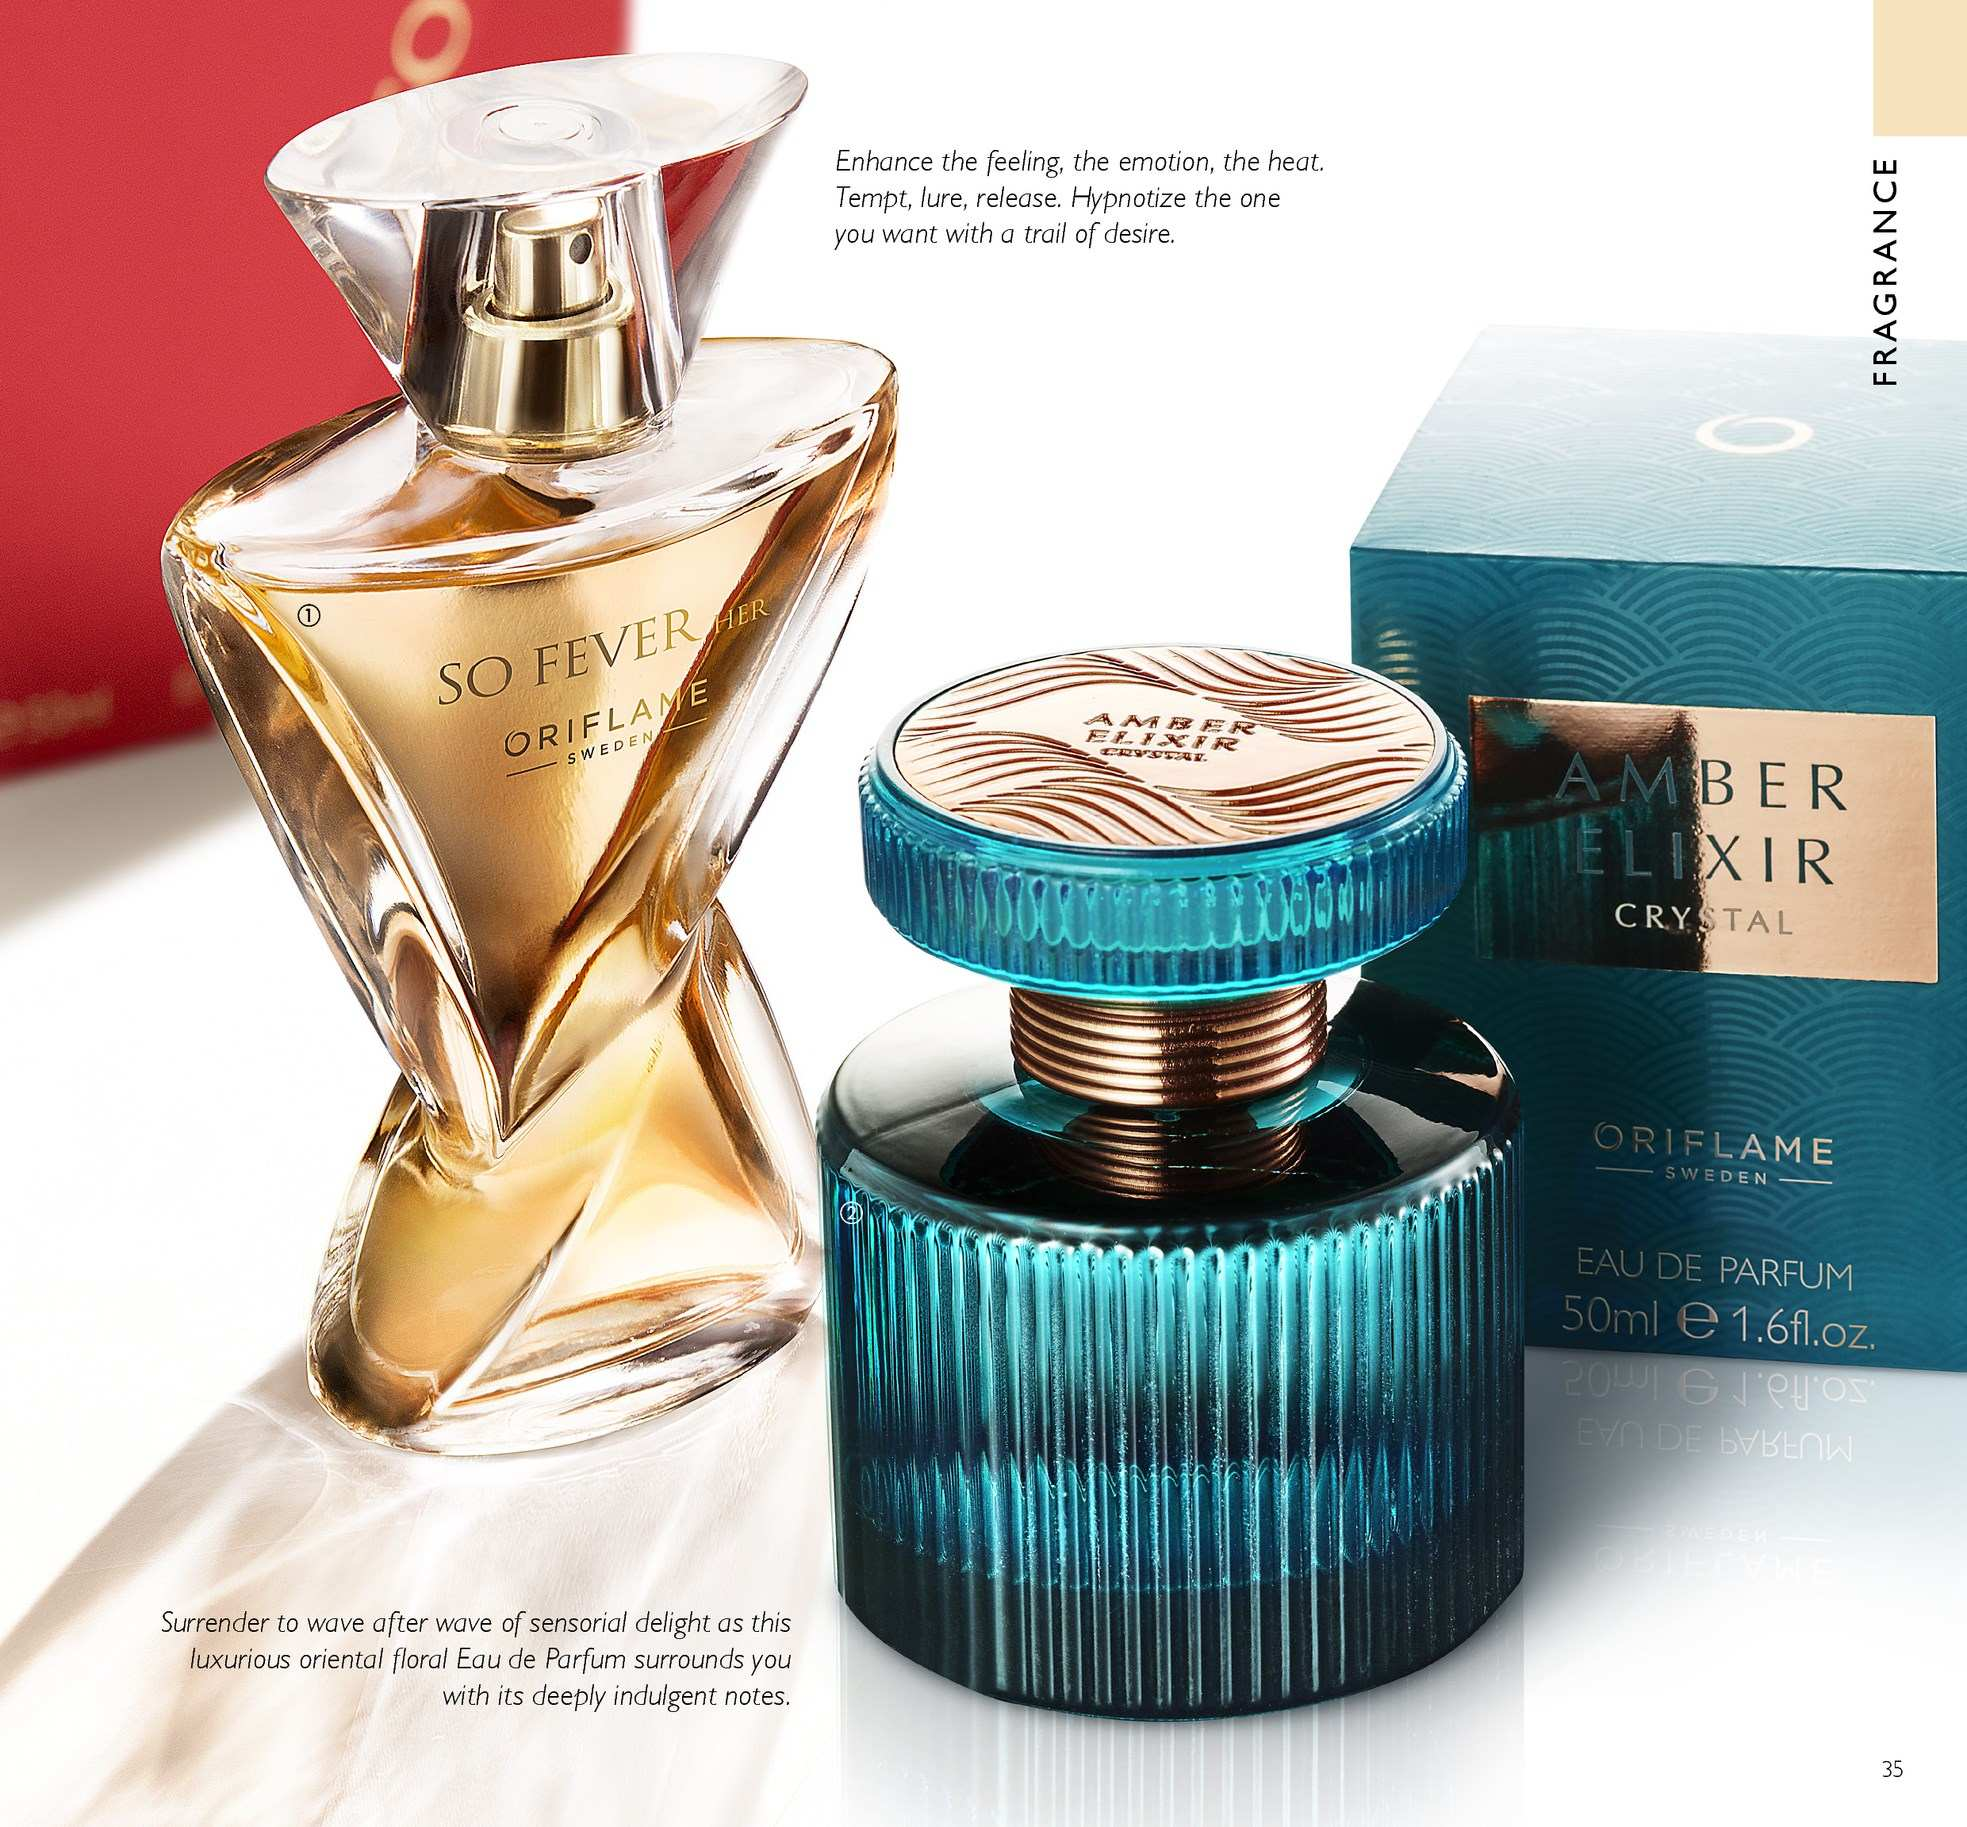 Oriflame offer  - 13.4.2018 - 3.5.2018 - Sales products - eau de parfum. Page 35.